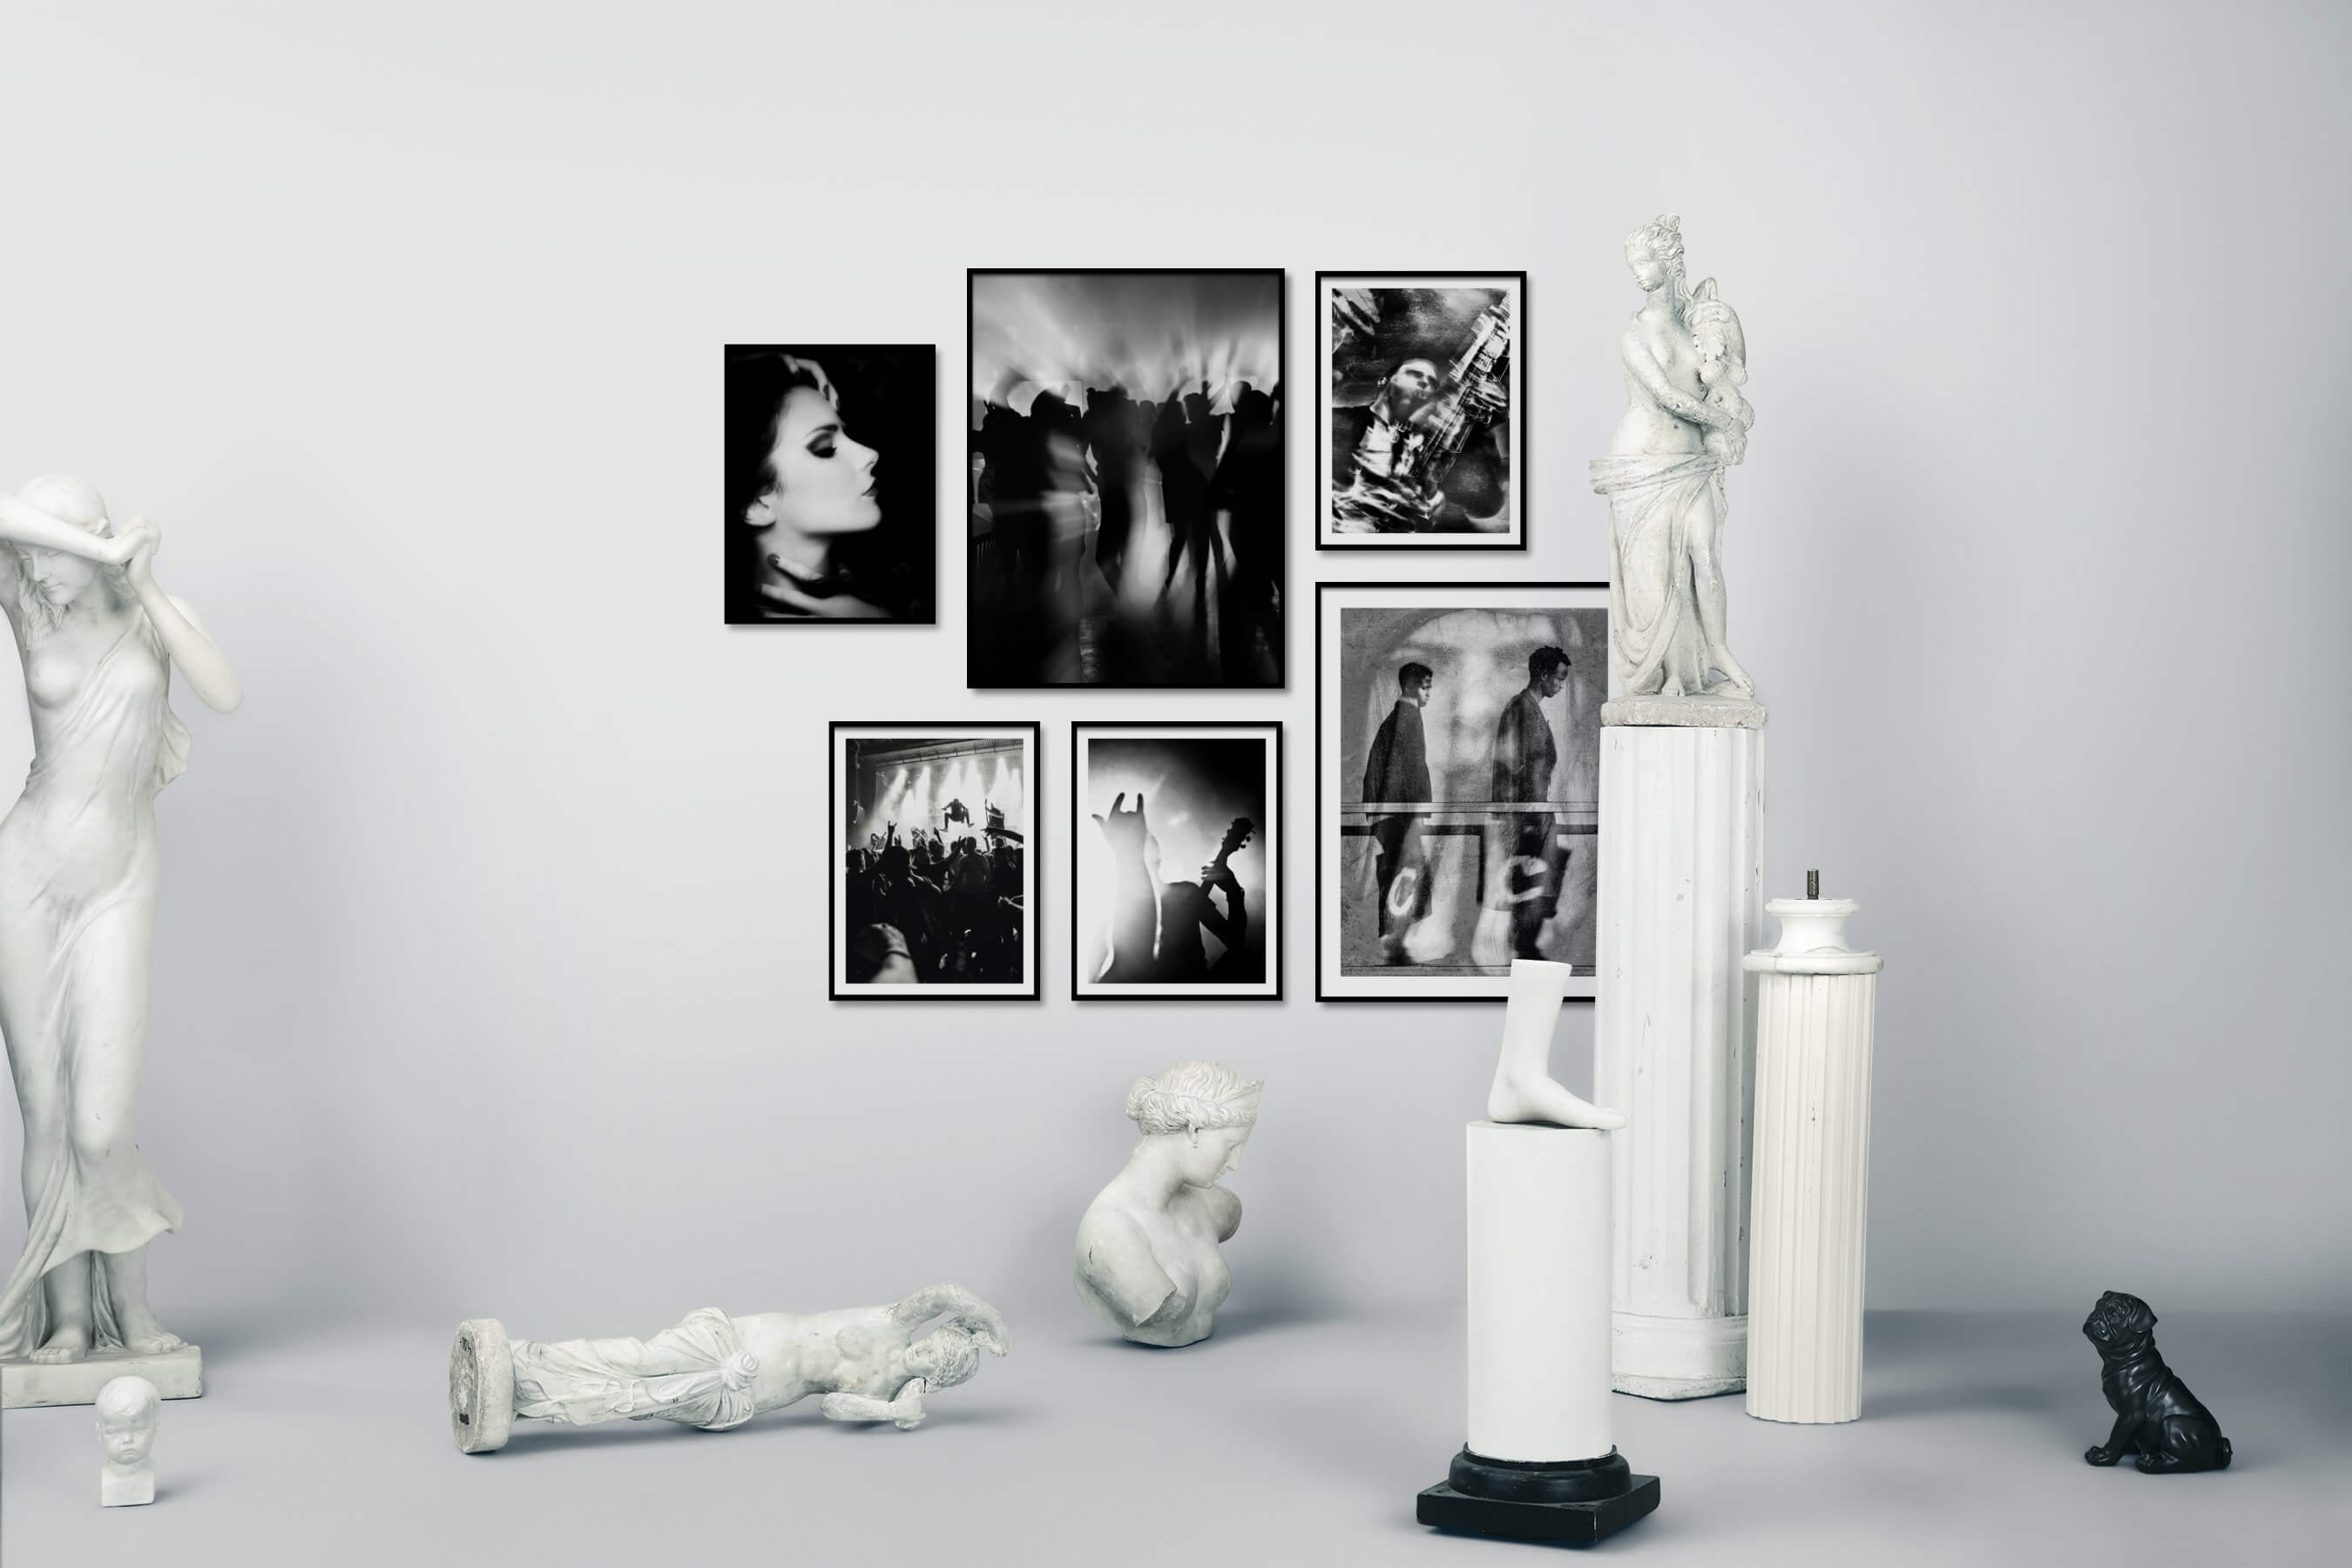 Gallery wall idea with six framed pictures arranged on a wall depicting Fashion & Beauty, Black & White, Dark Tones, Vintage, and Artsy